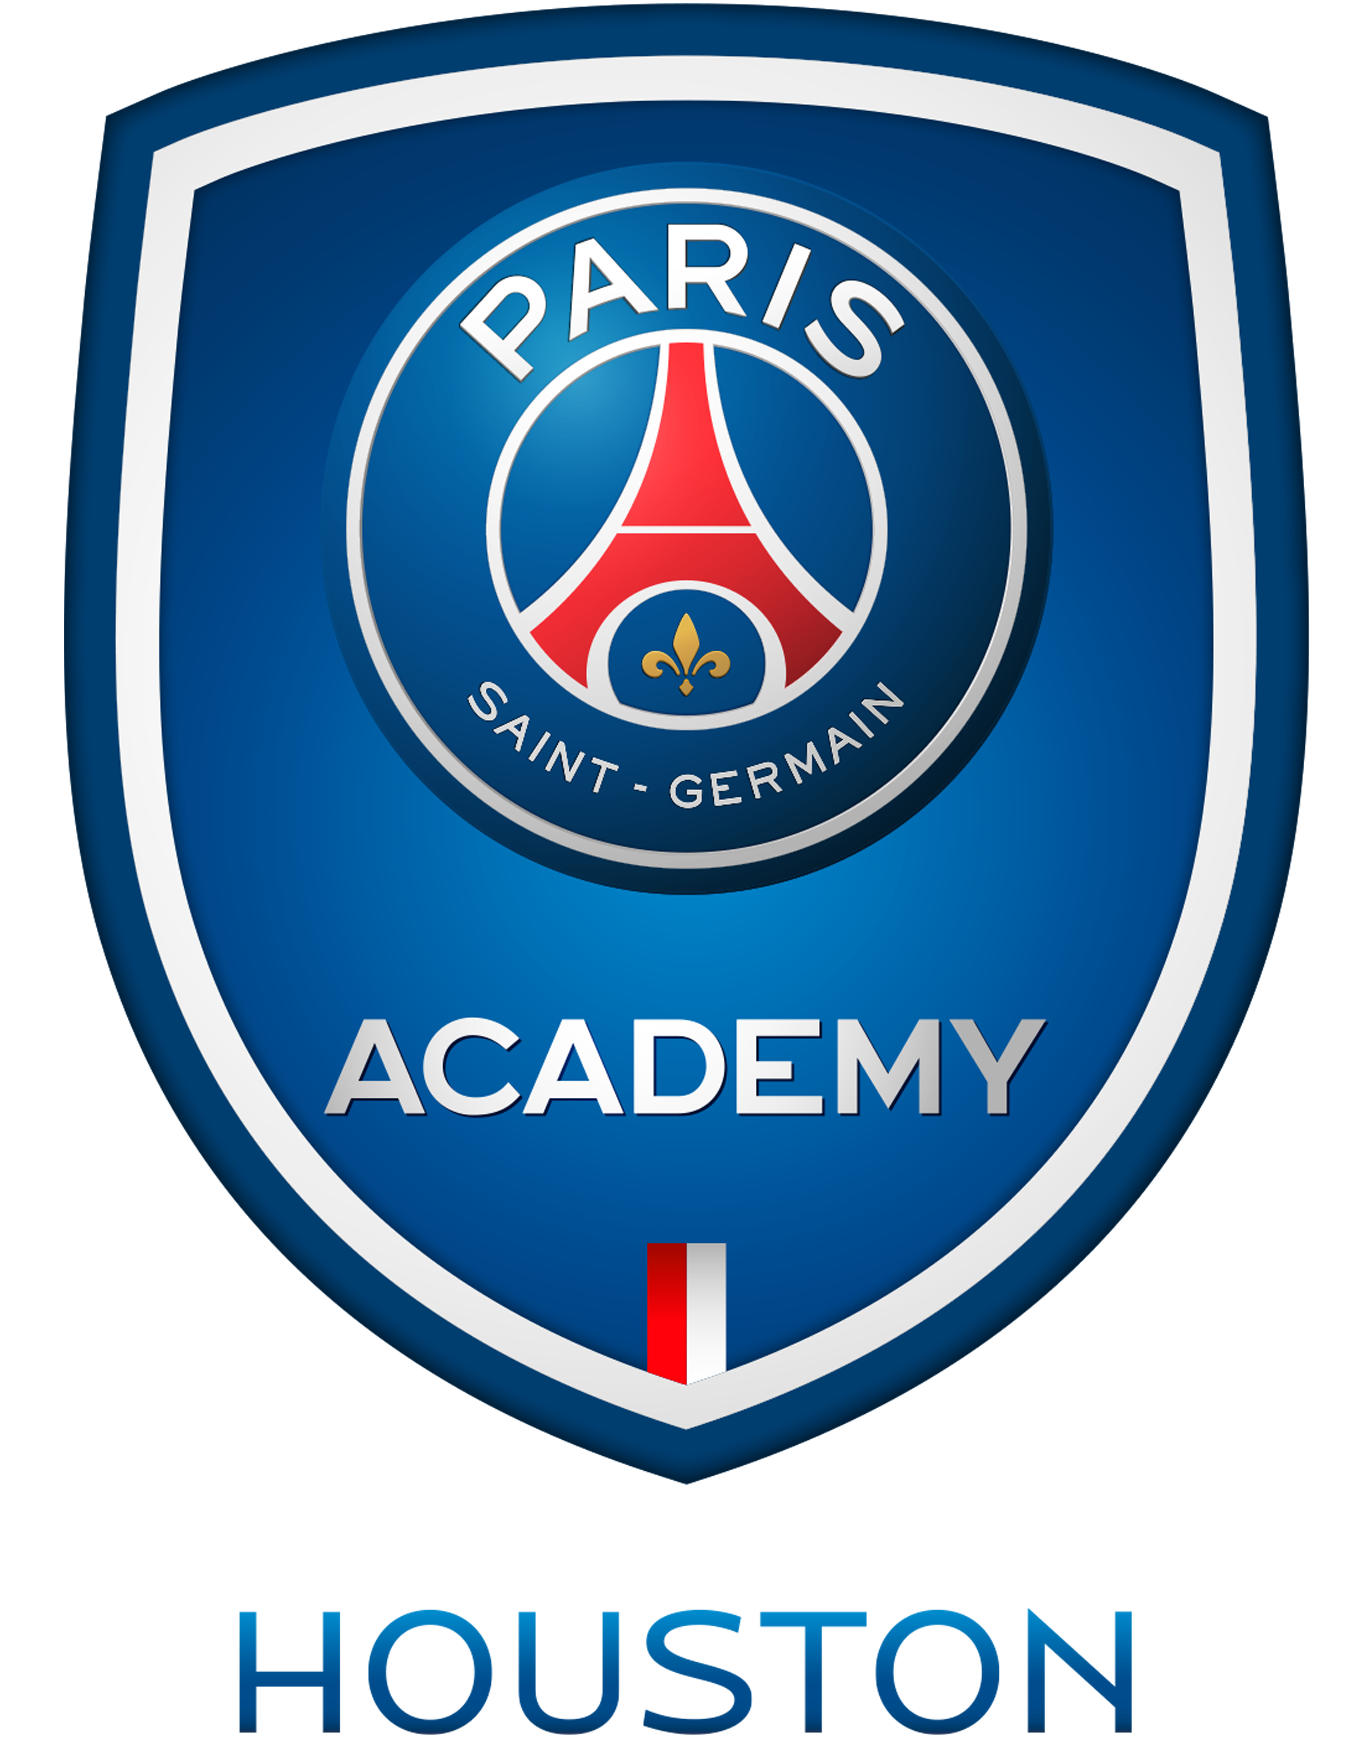 Paris Saint-Germain Academy Houston Soccer Club